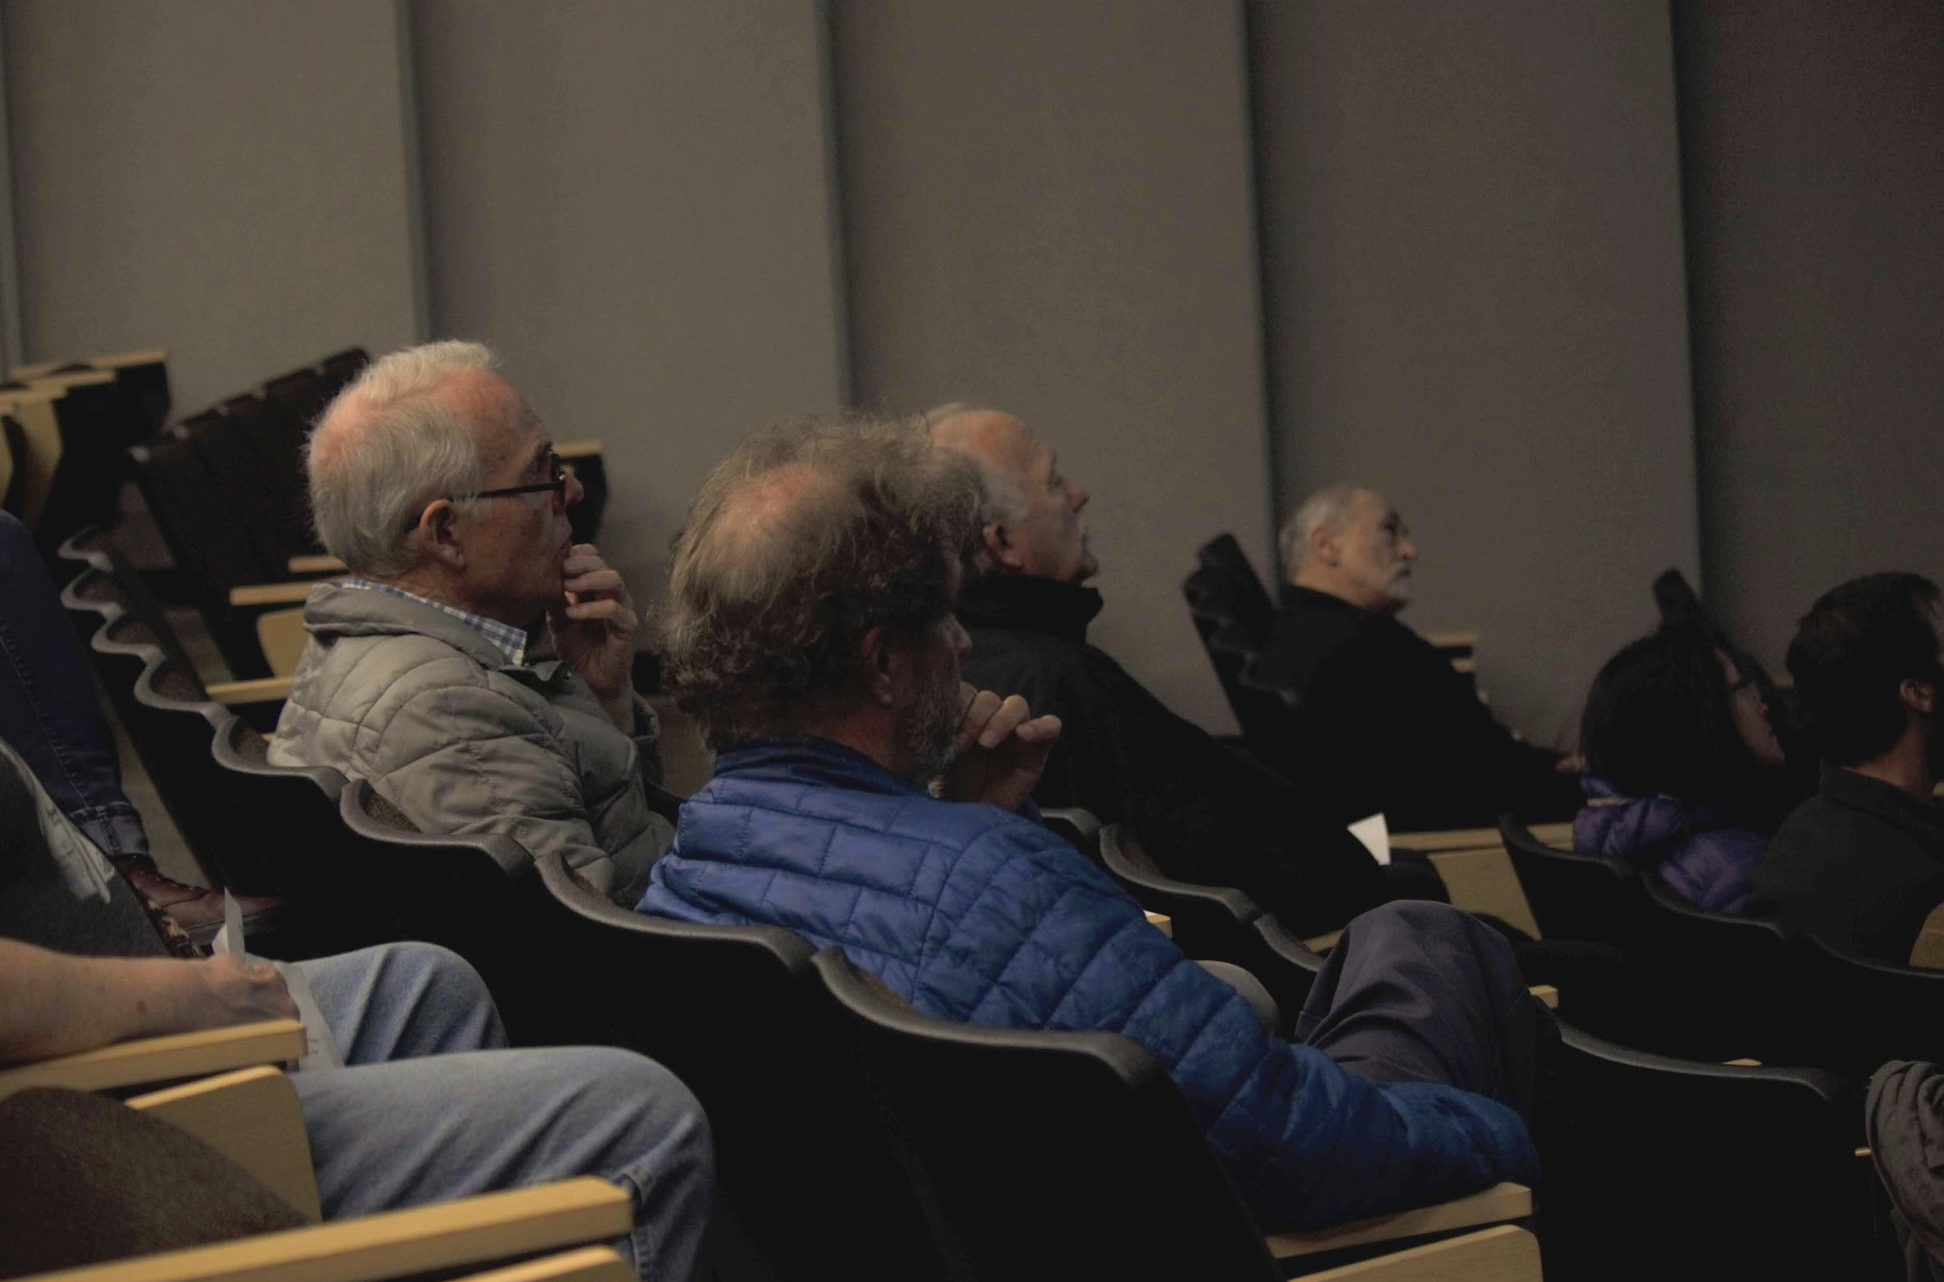 Audience members are interested and engaged by the material presented by the Monument Research Symposium scientists.